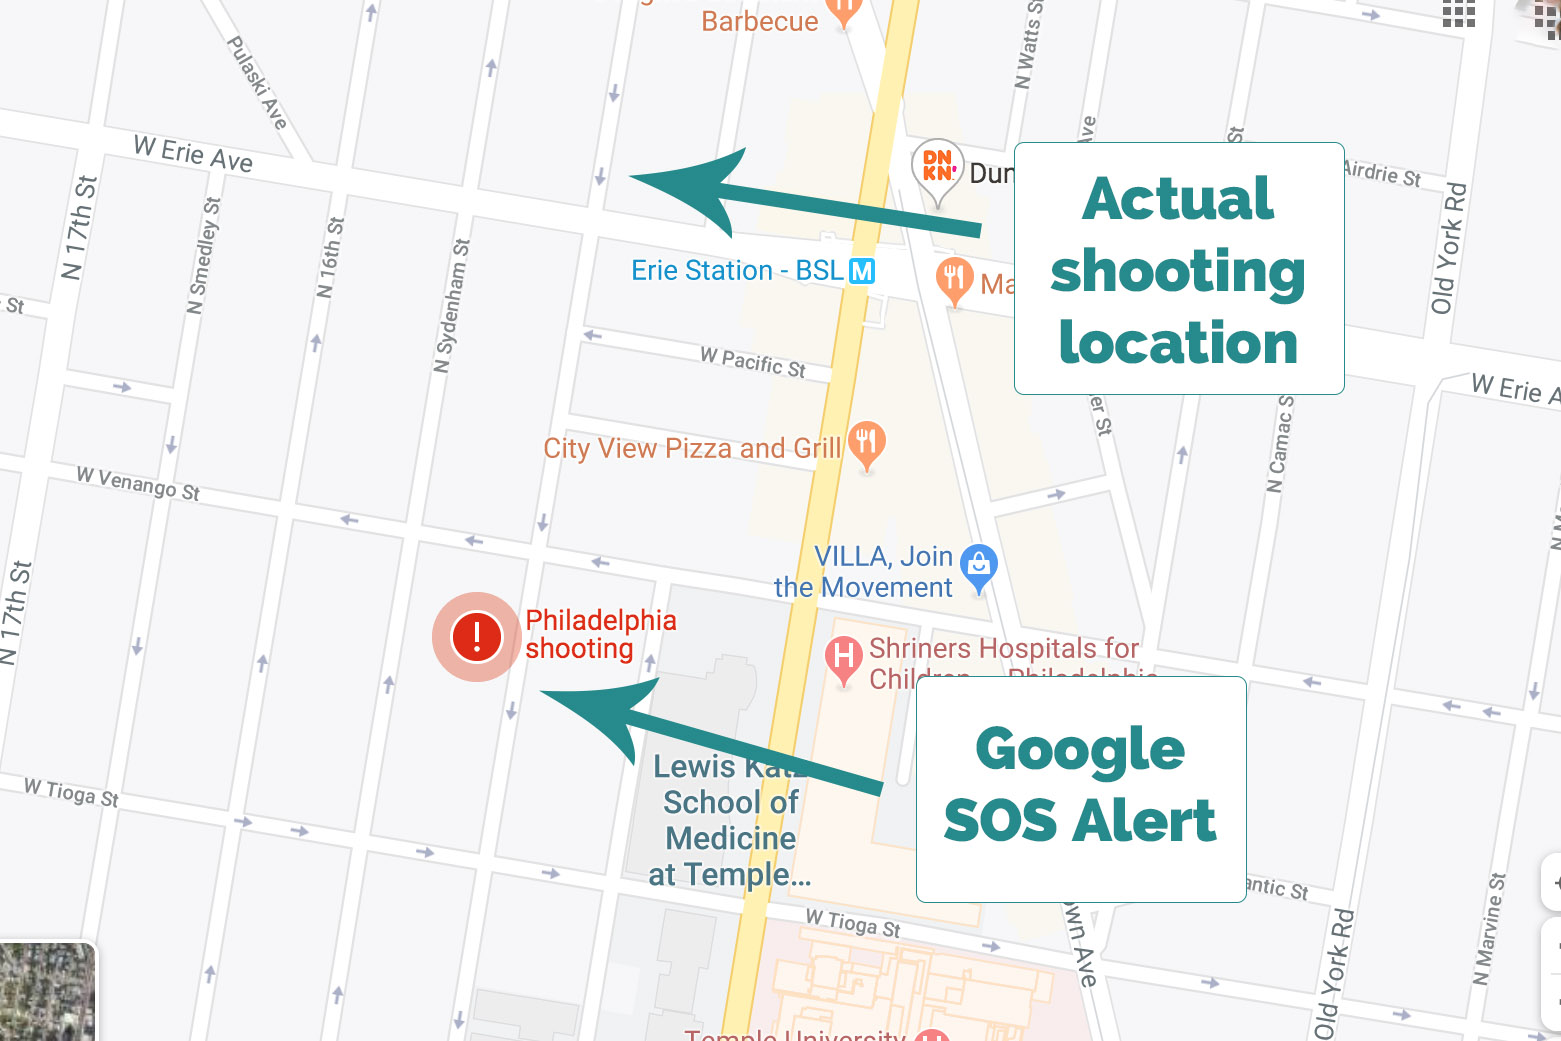 Google sent up an SOS for the North Philly shooting -- in the wrong